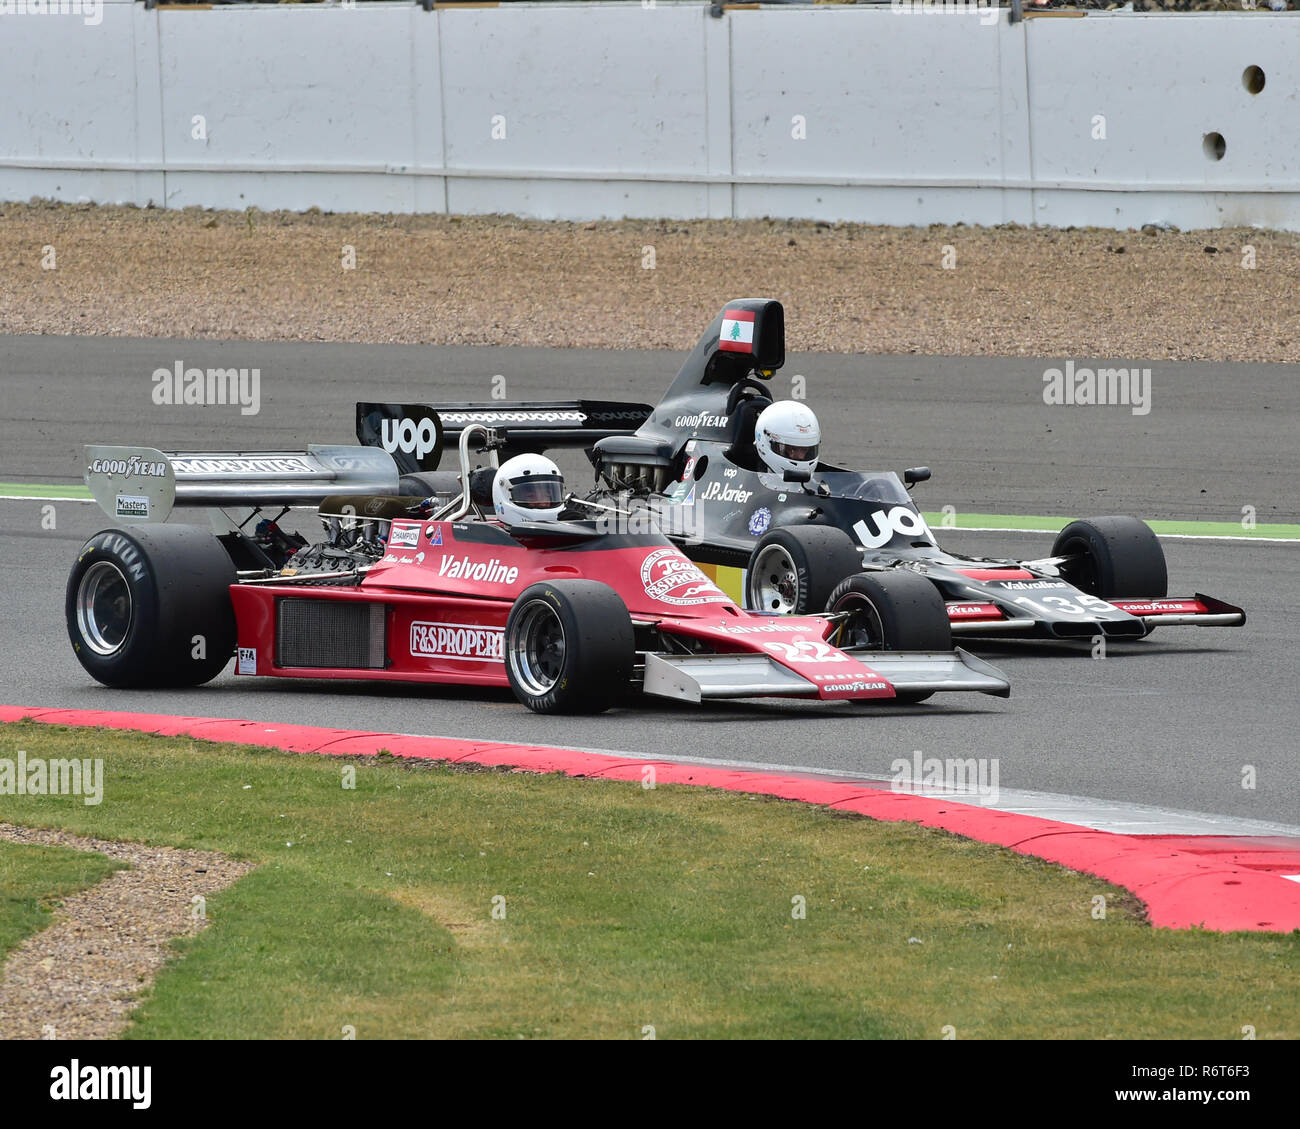 James Hagan, Ensign MN177, Greg Audi, Shadow DN5, Silverstone Classic 2014, 2014, Classic Racing Cars, F1, FIA, Ford, Formula 1, Grand Prix cars, Hist - Stock Image